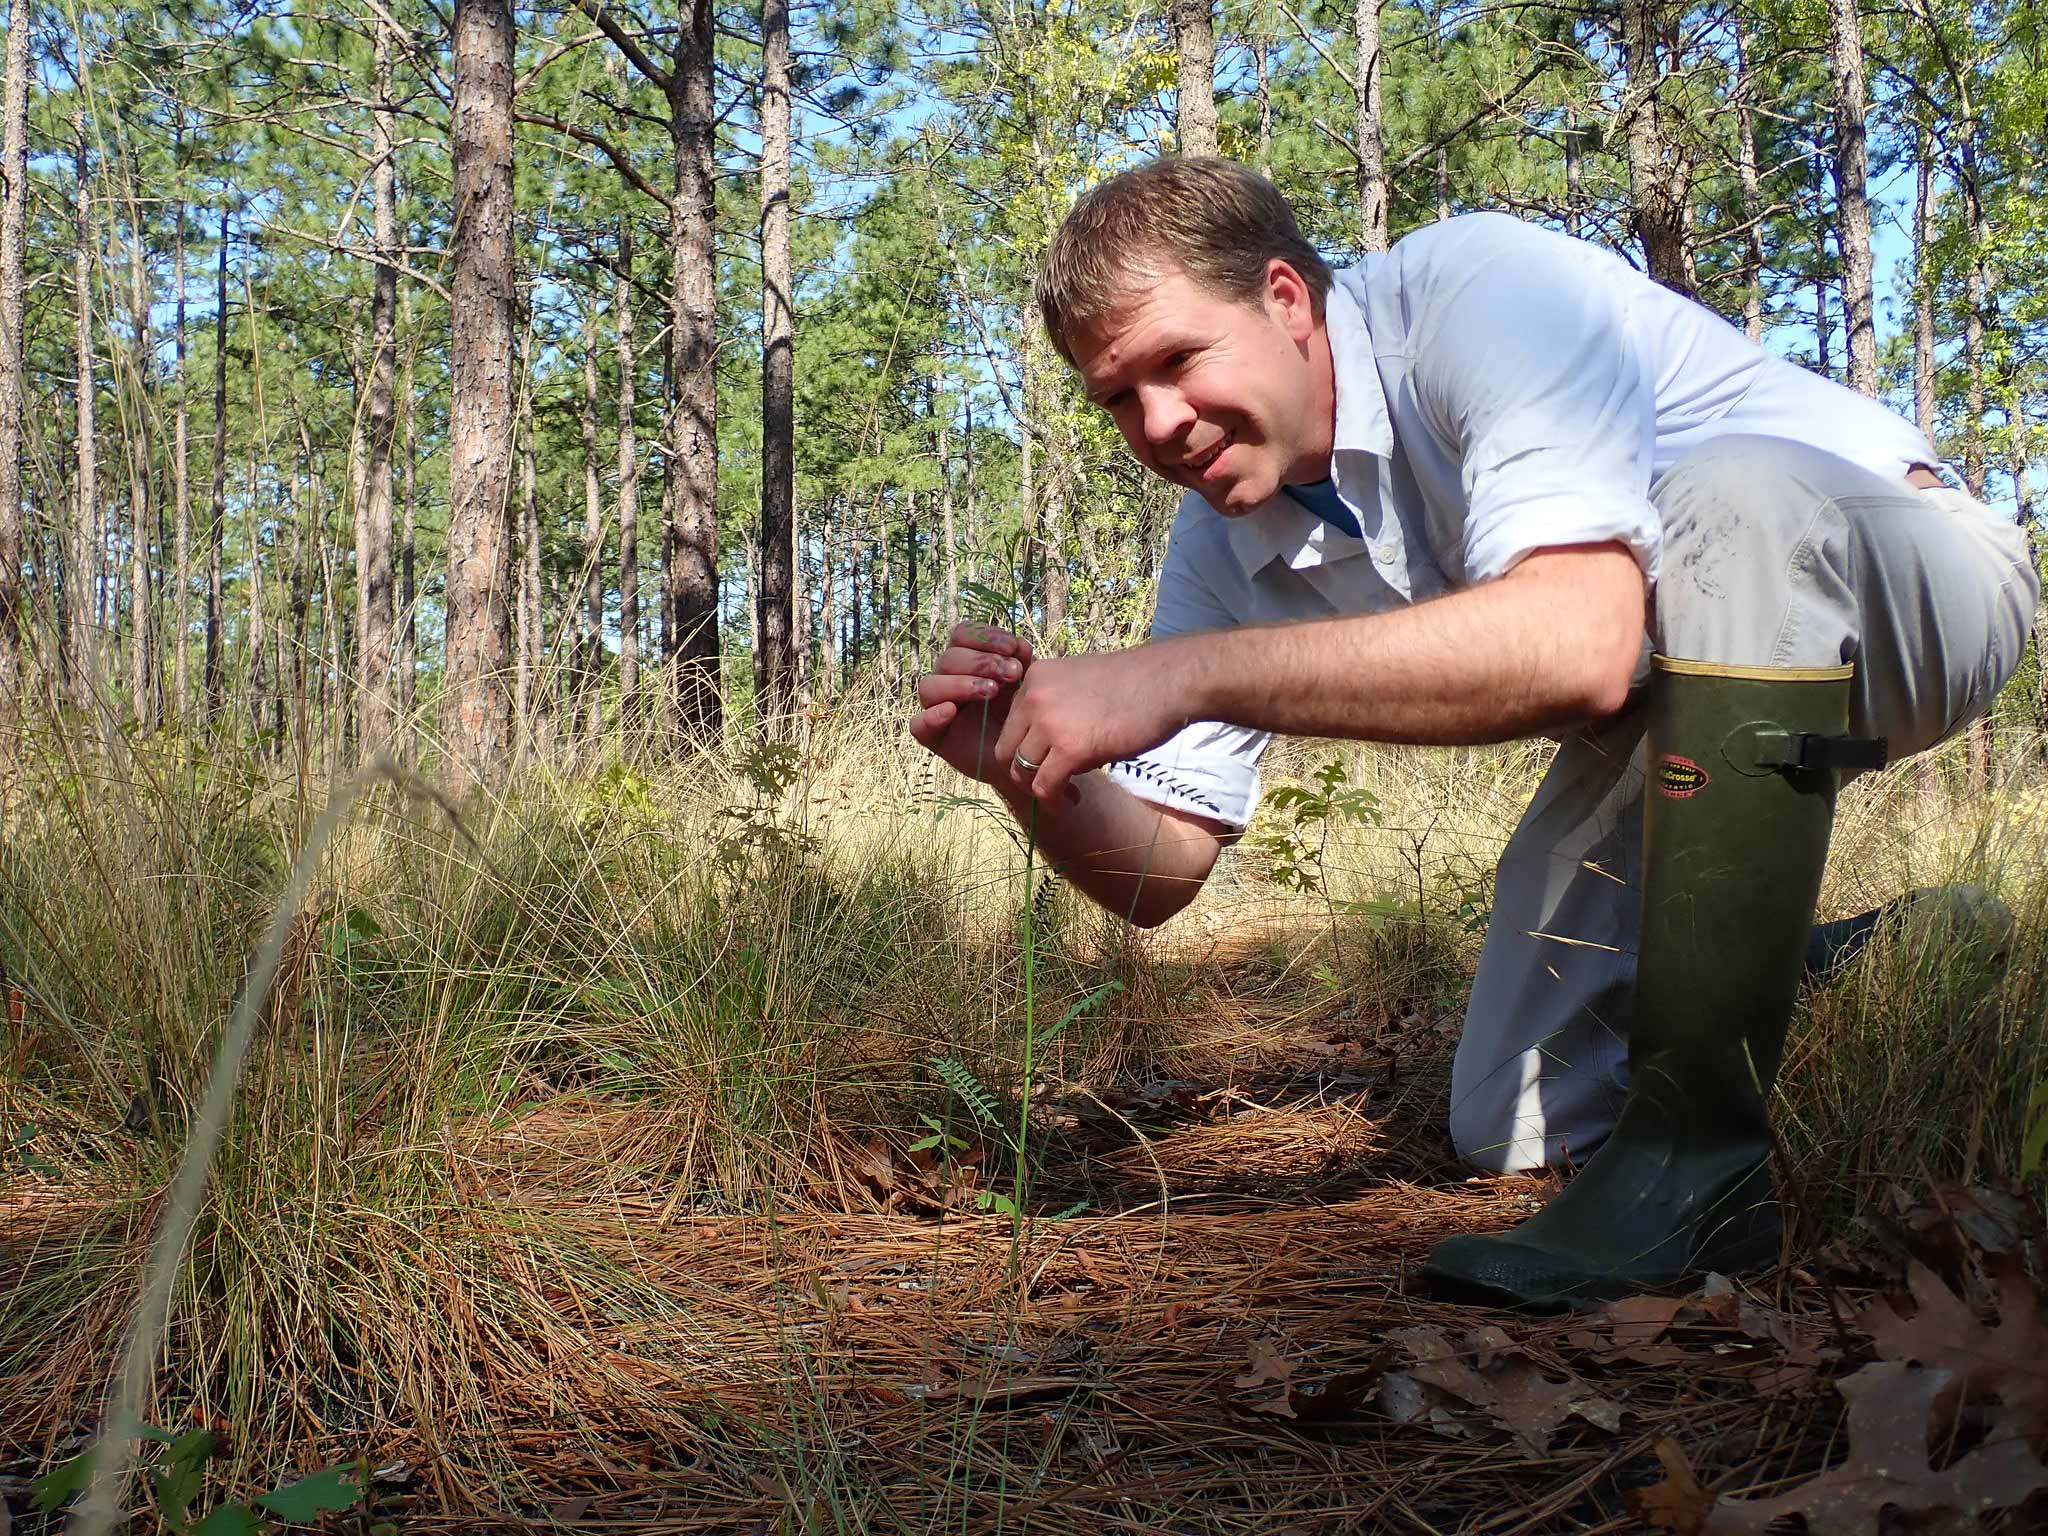 Mike Kunz monitoring Astragalus michauxii at Fort Bragg